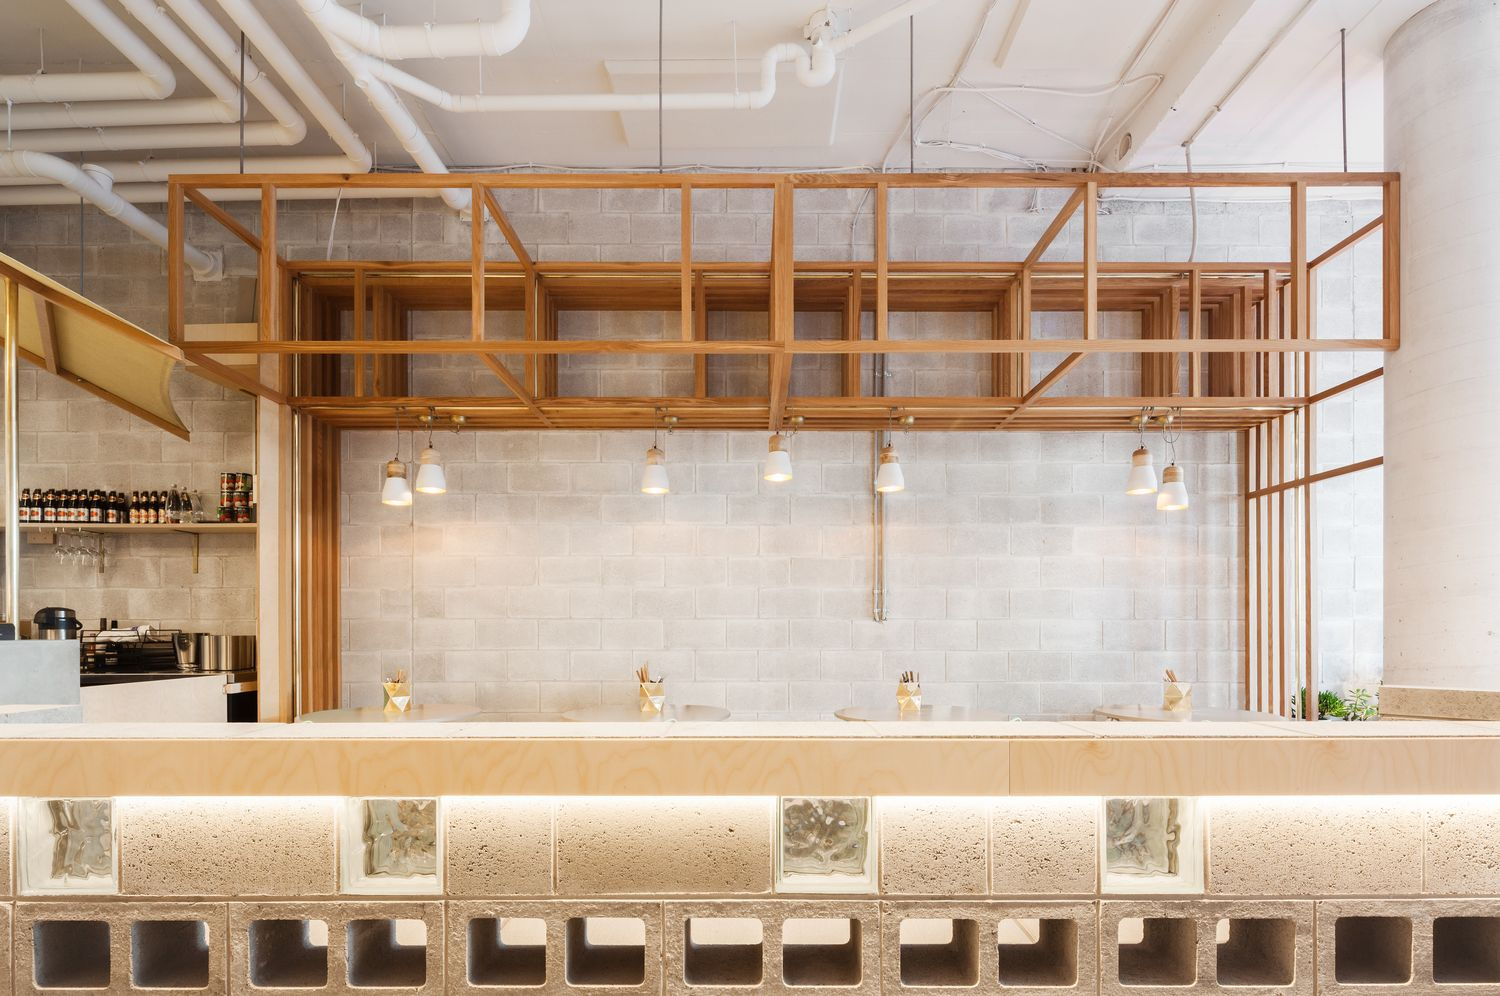 In Waterloo Sydney Design Firm BrandWorks Has Used A Little Thing Called Luck To Create So Refined And Minimal Vietnamese Restaurant